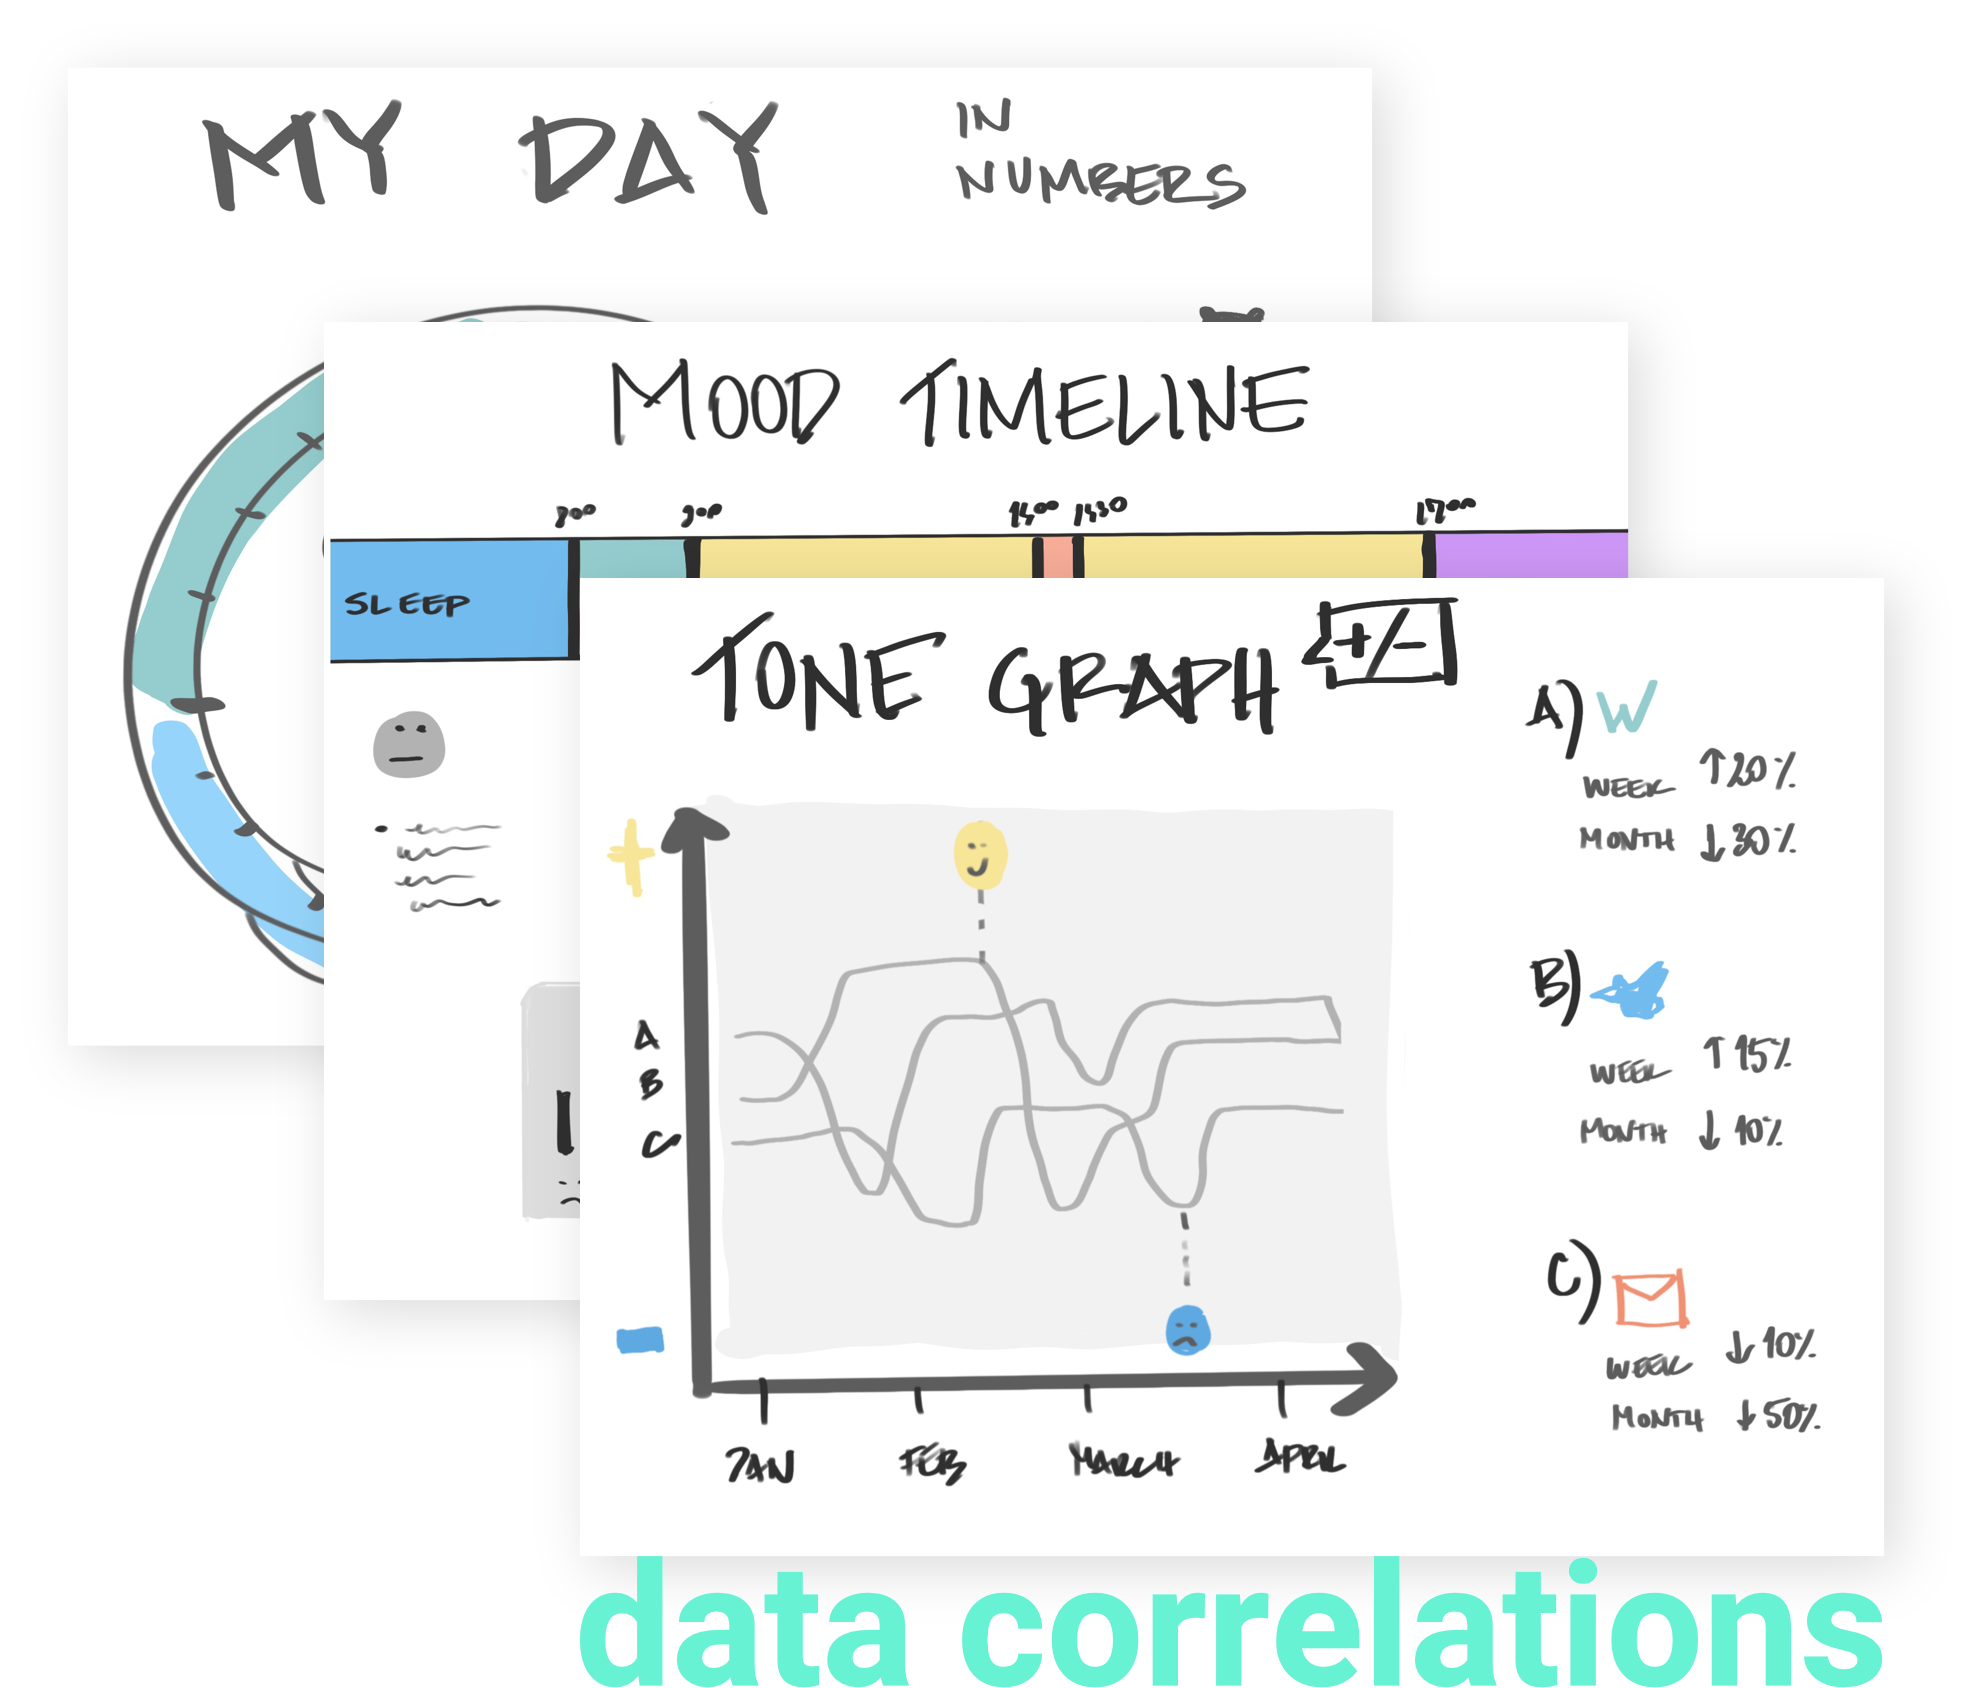 The tone graph compares your tone of writing and your mood rating to make you aware of how your mood influences your communication.